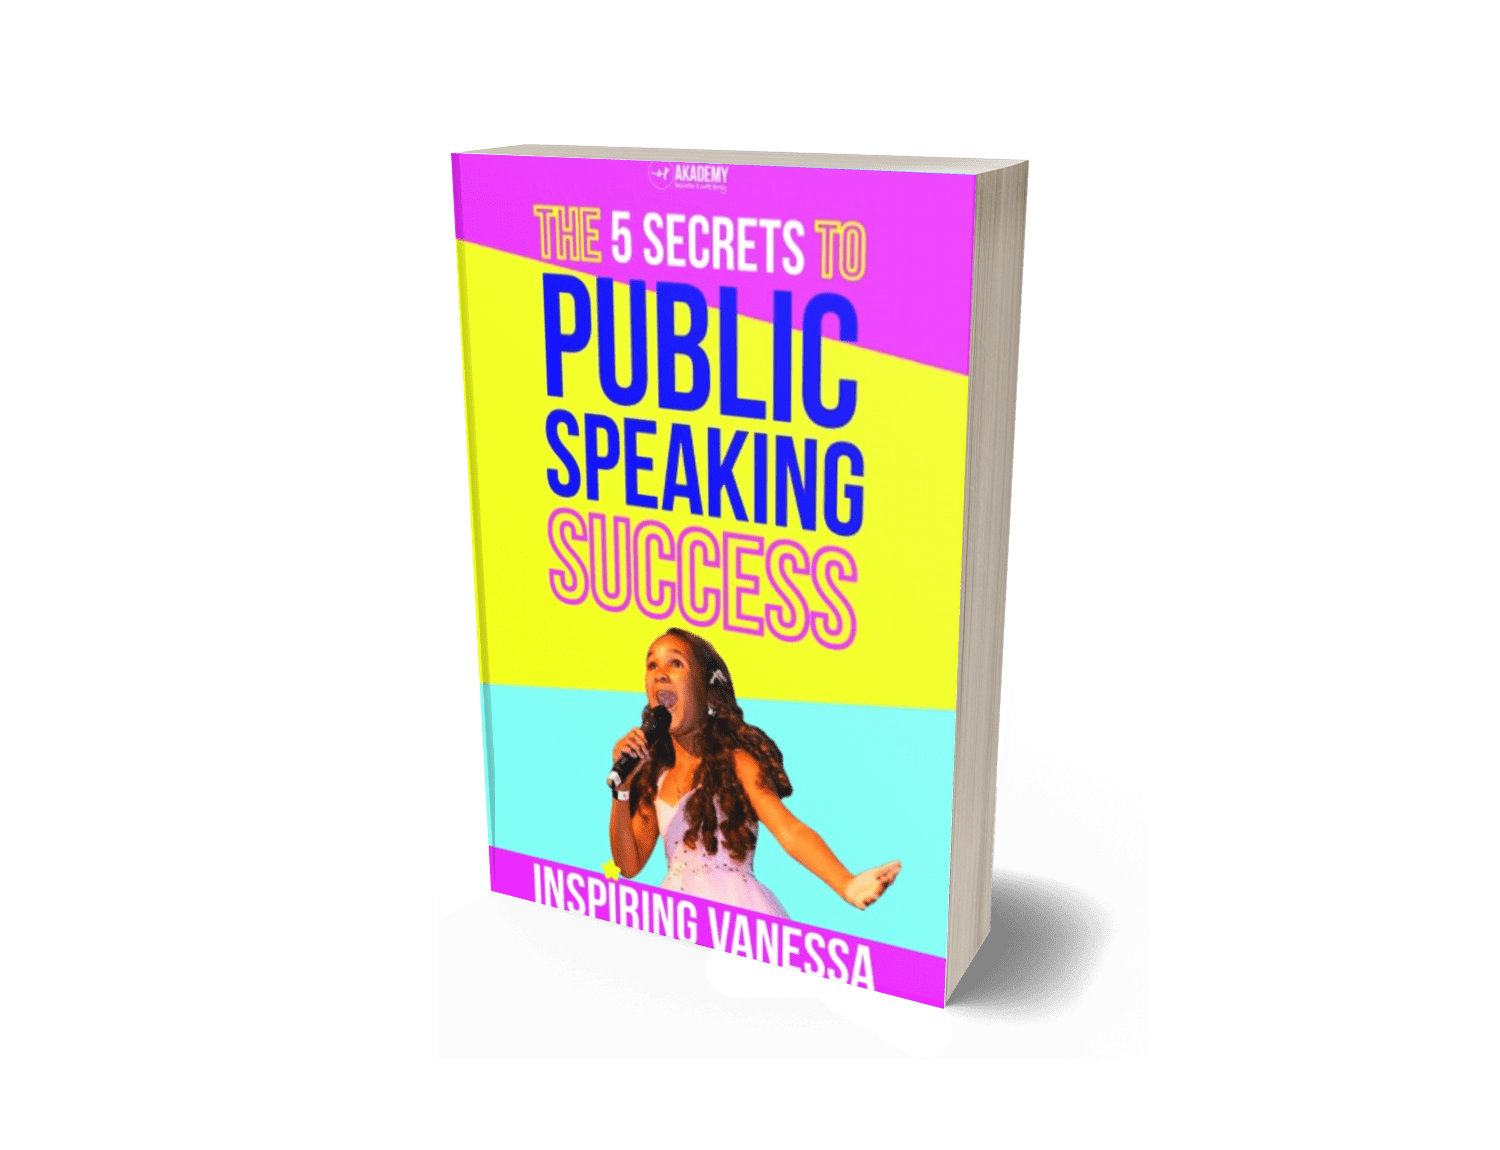 The 5 Secrets to Public Speaking Success